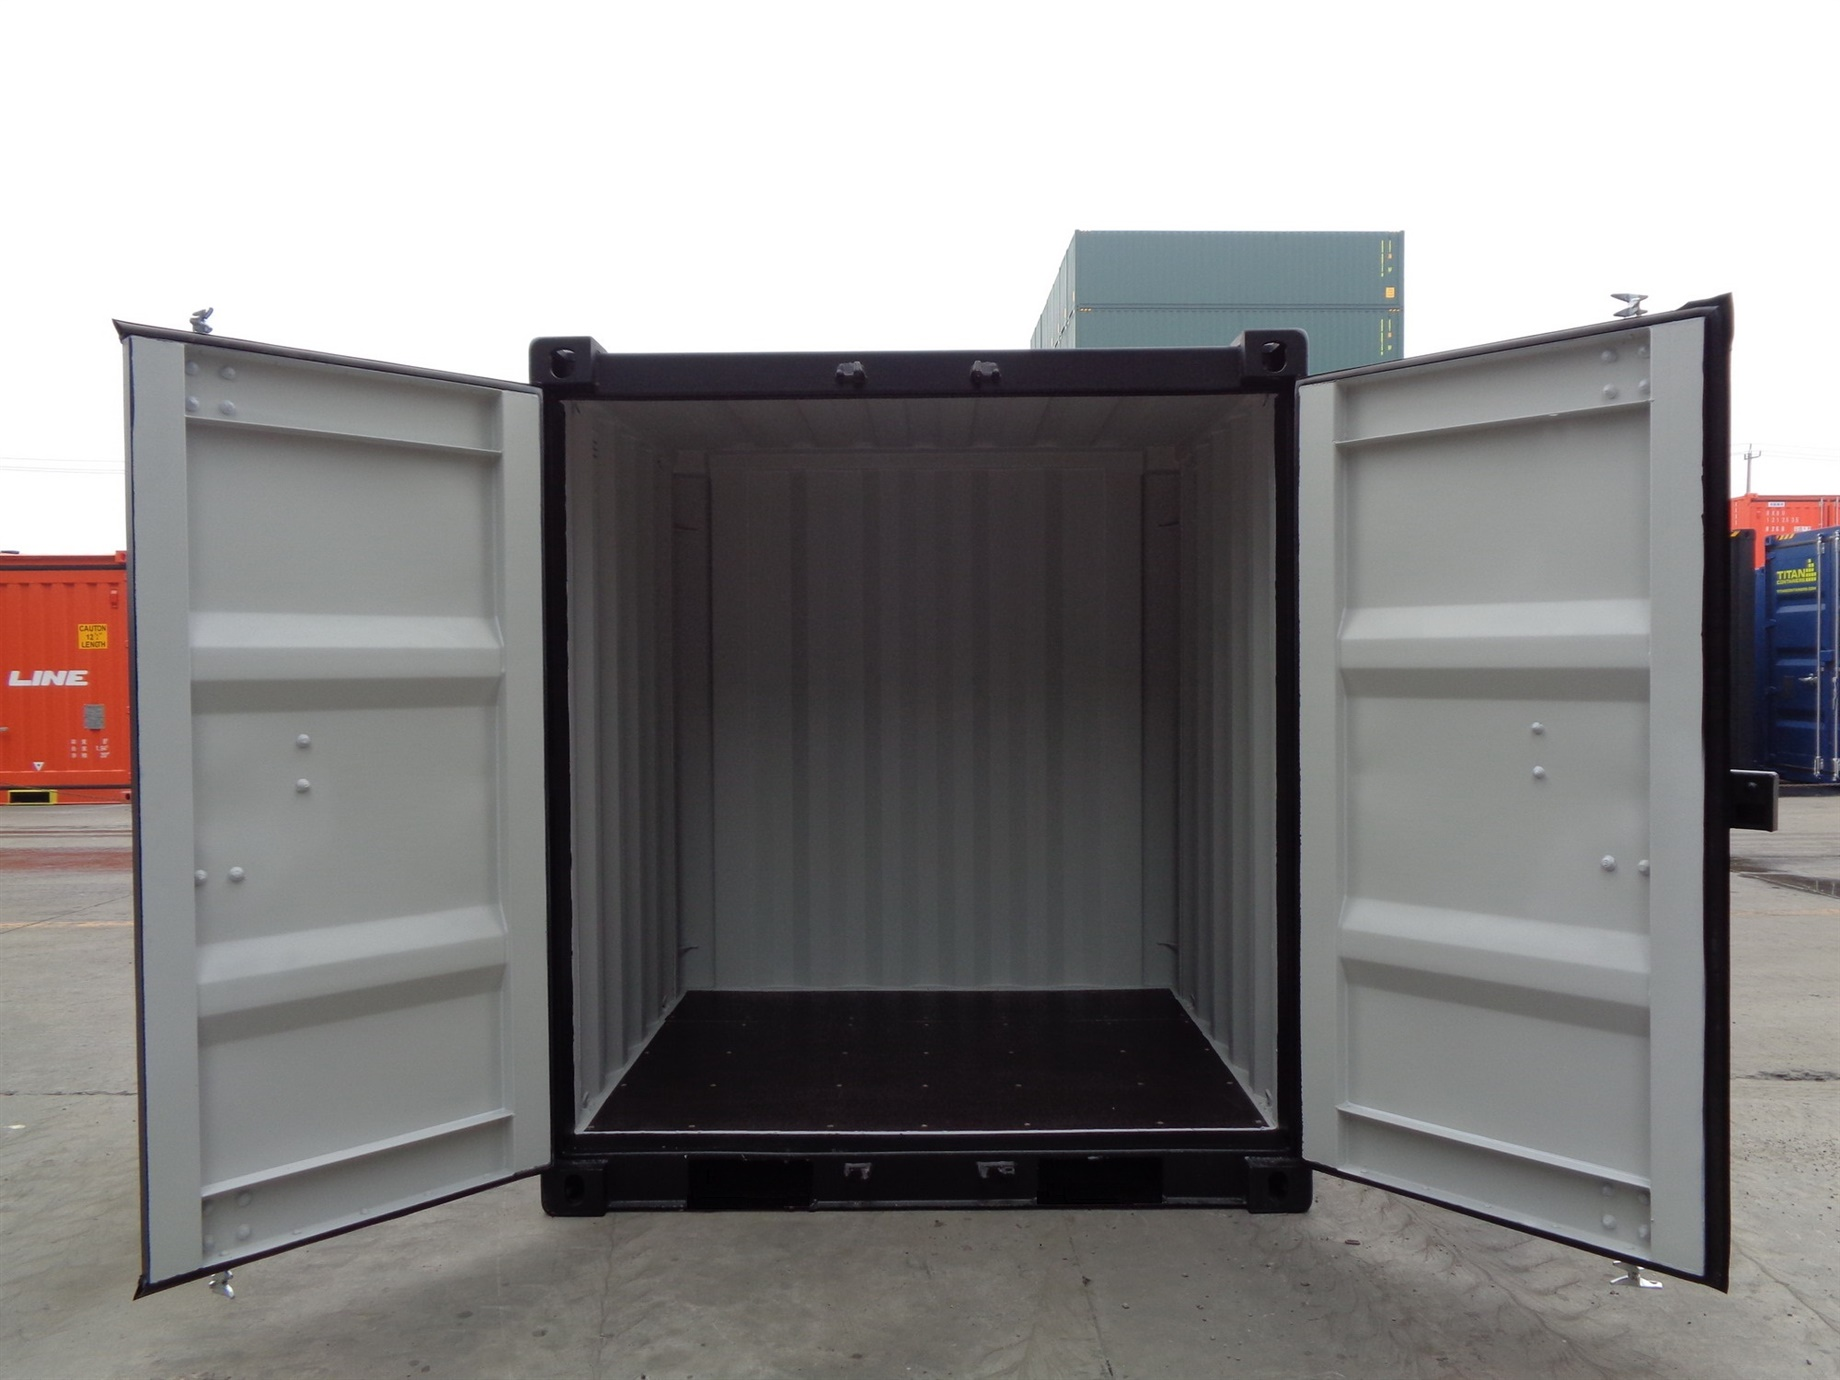 6 8 10 black doors open foot storage container TITAN Shiipping Containers